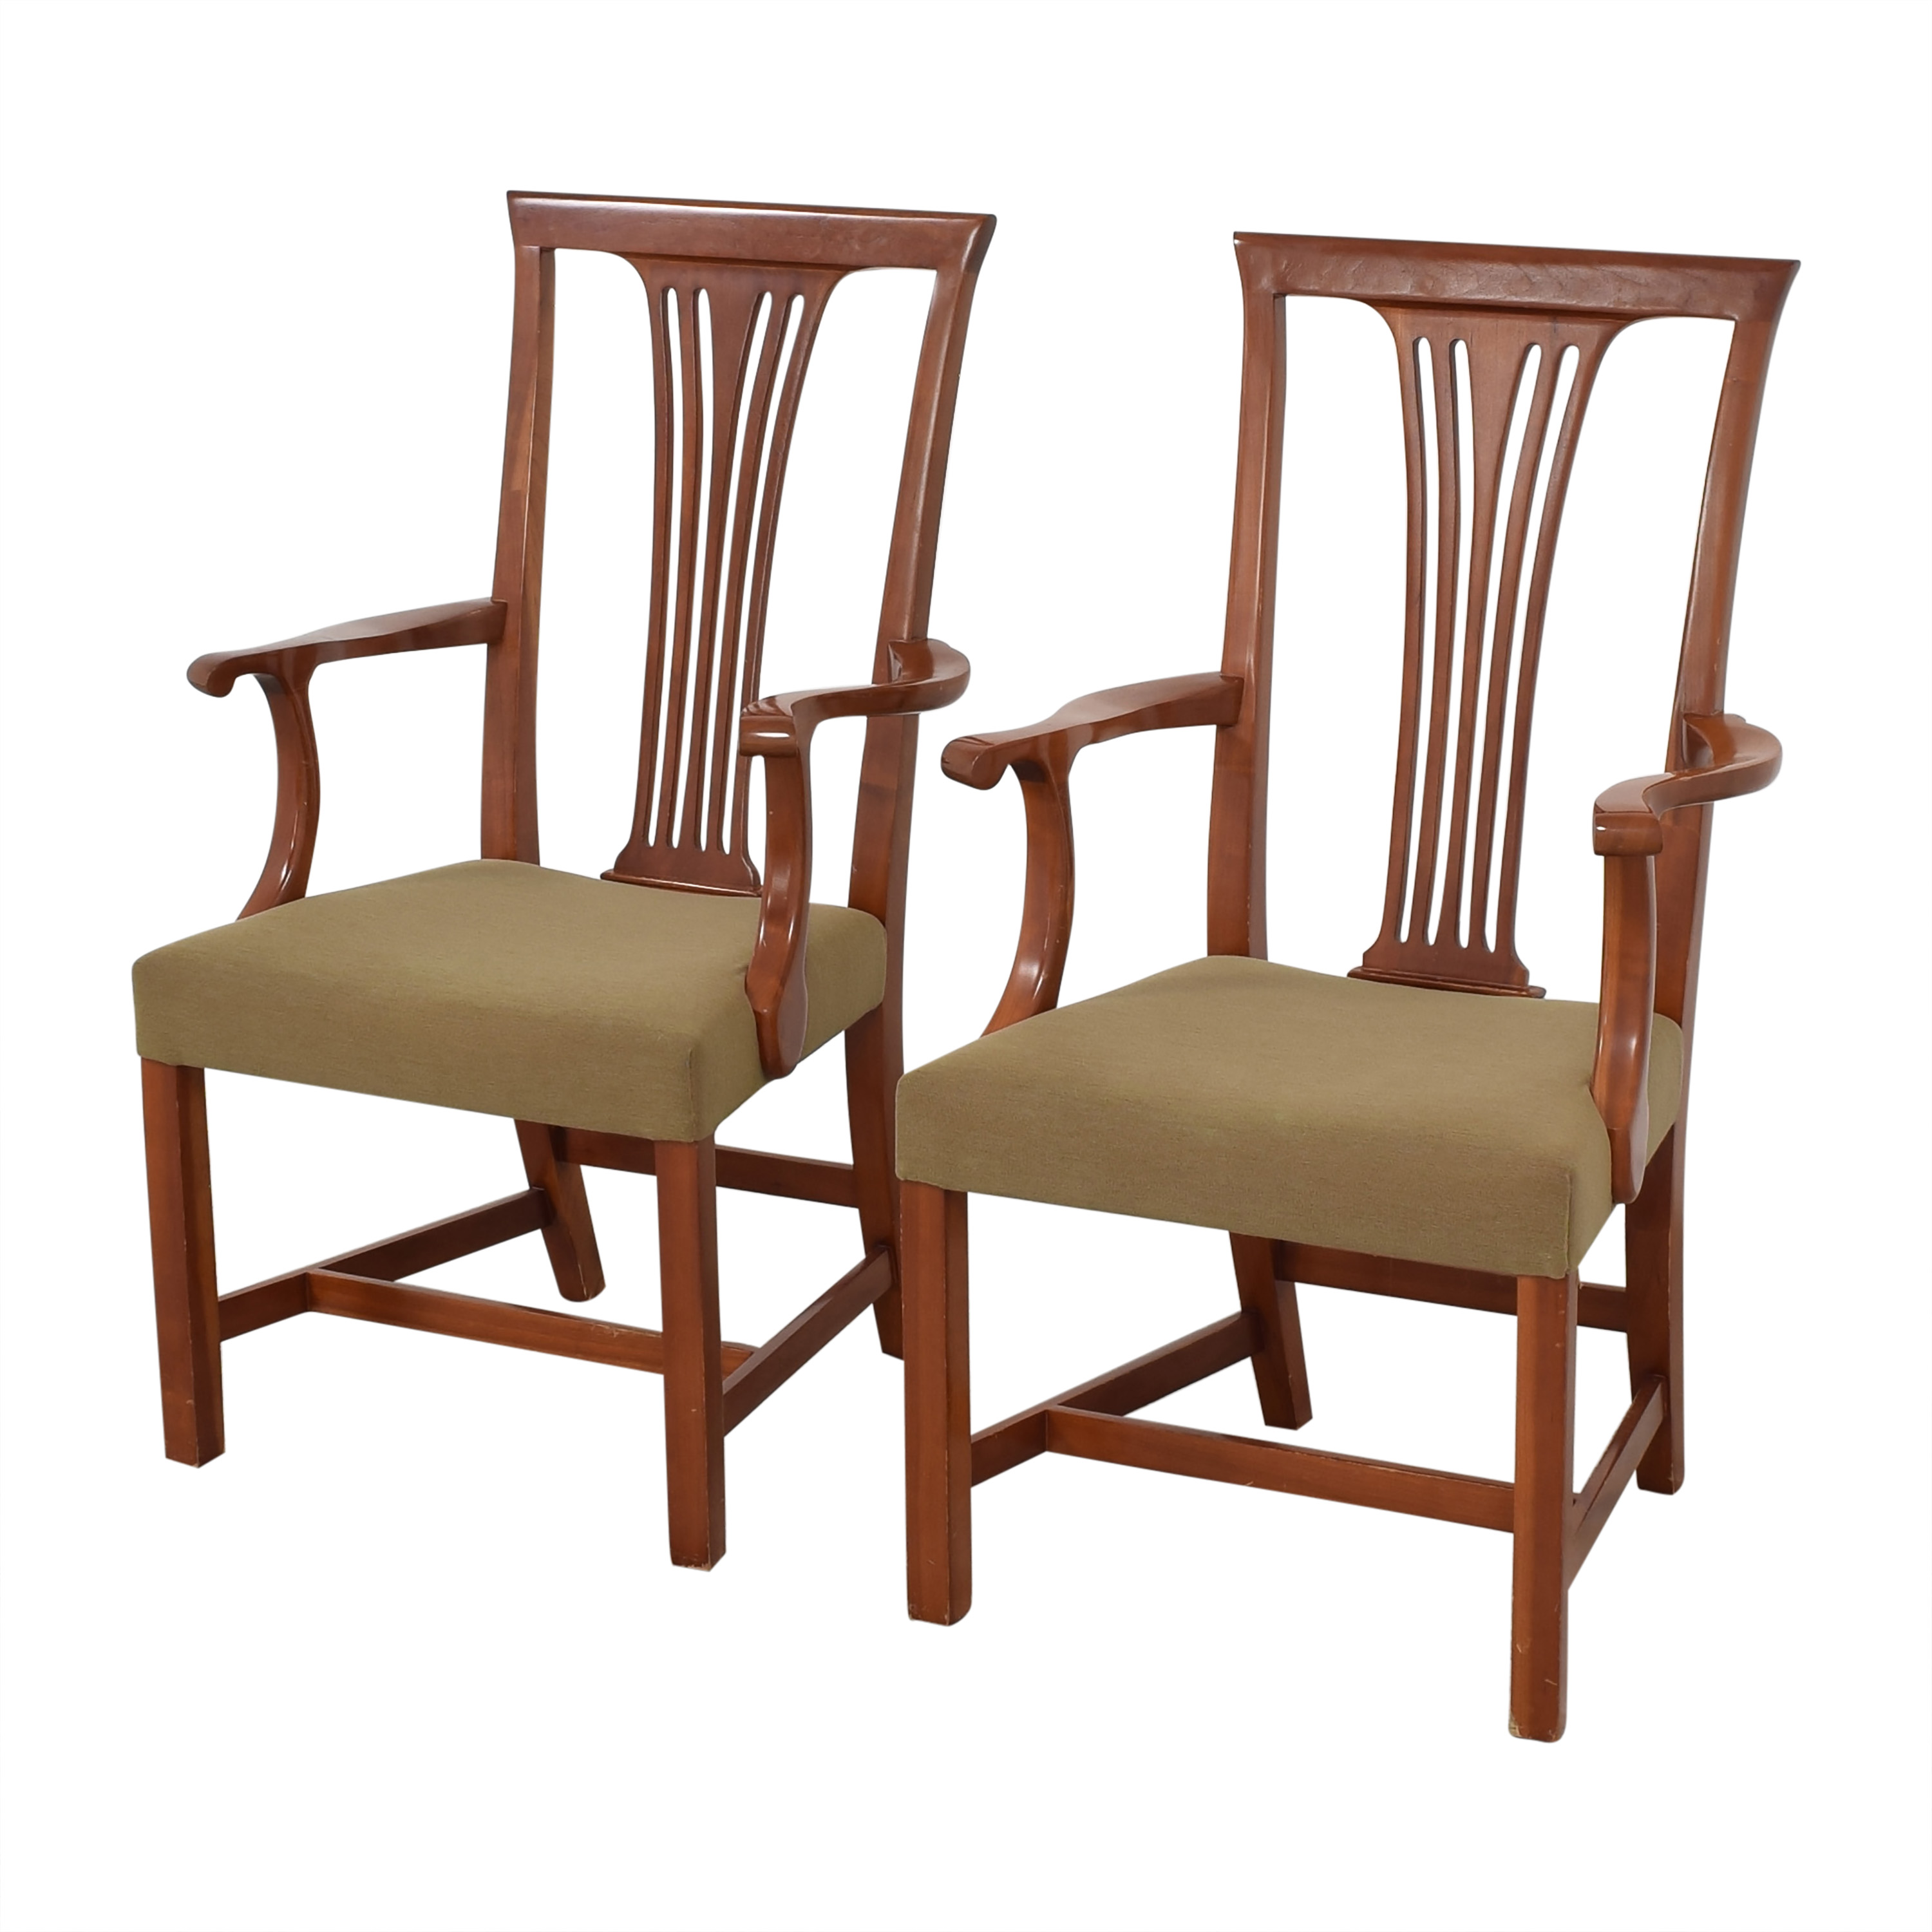 Bright Bright Dining Chairs for sale